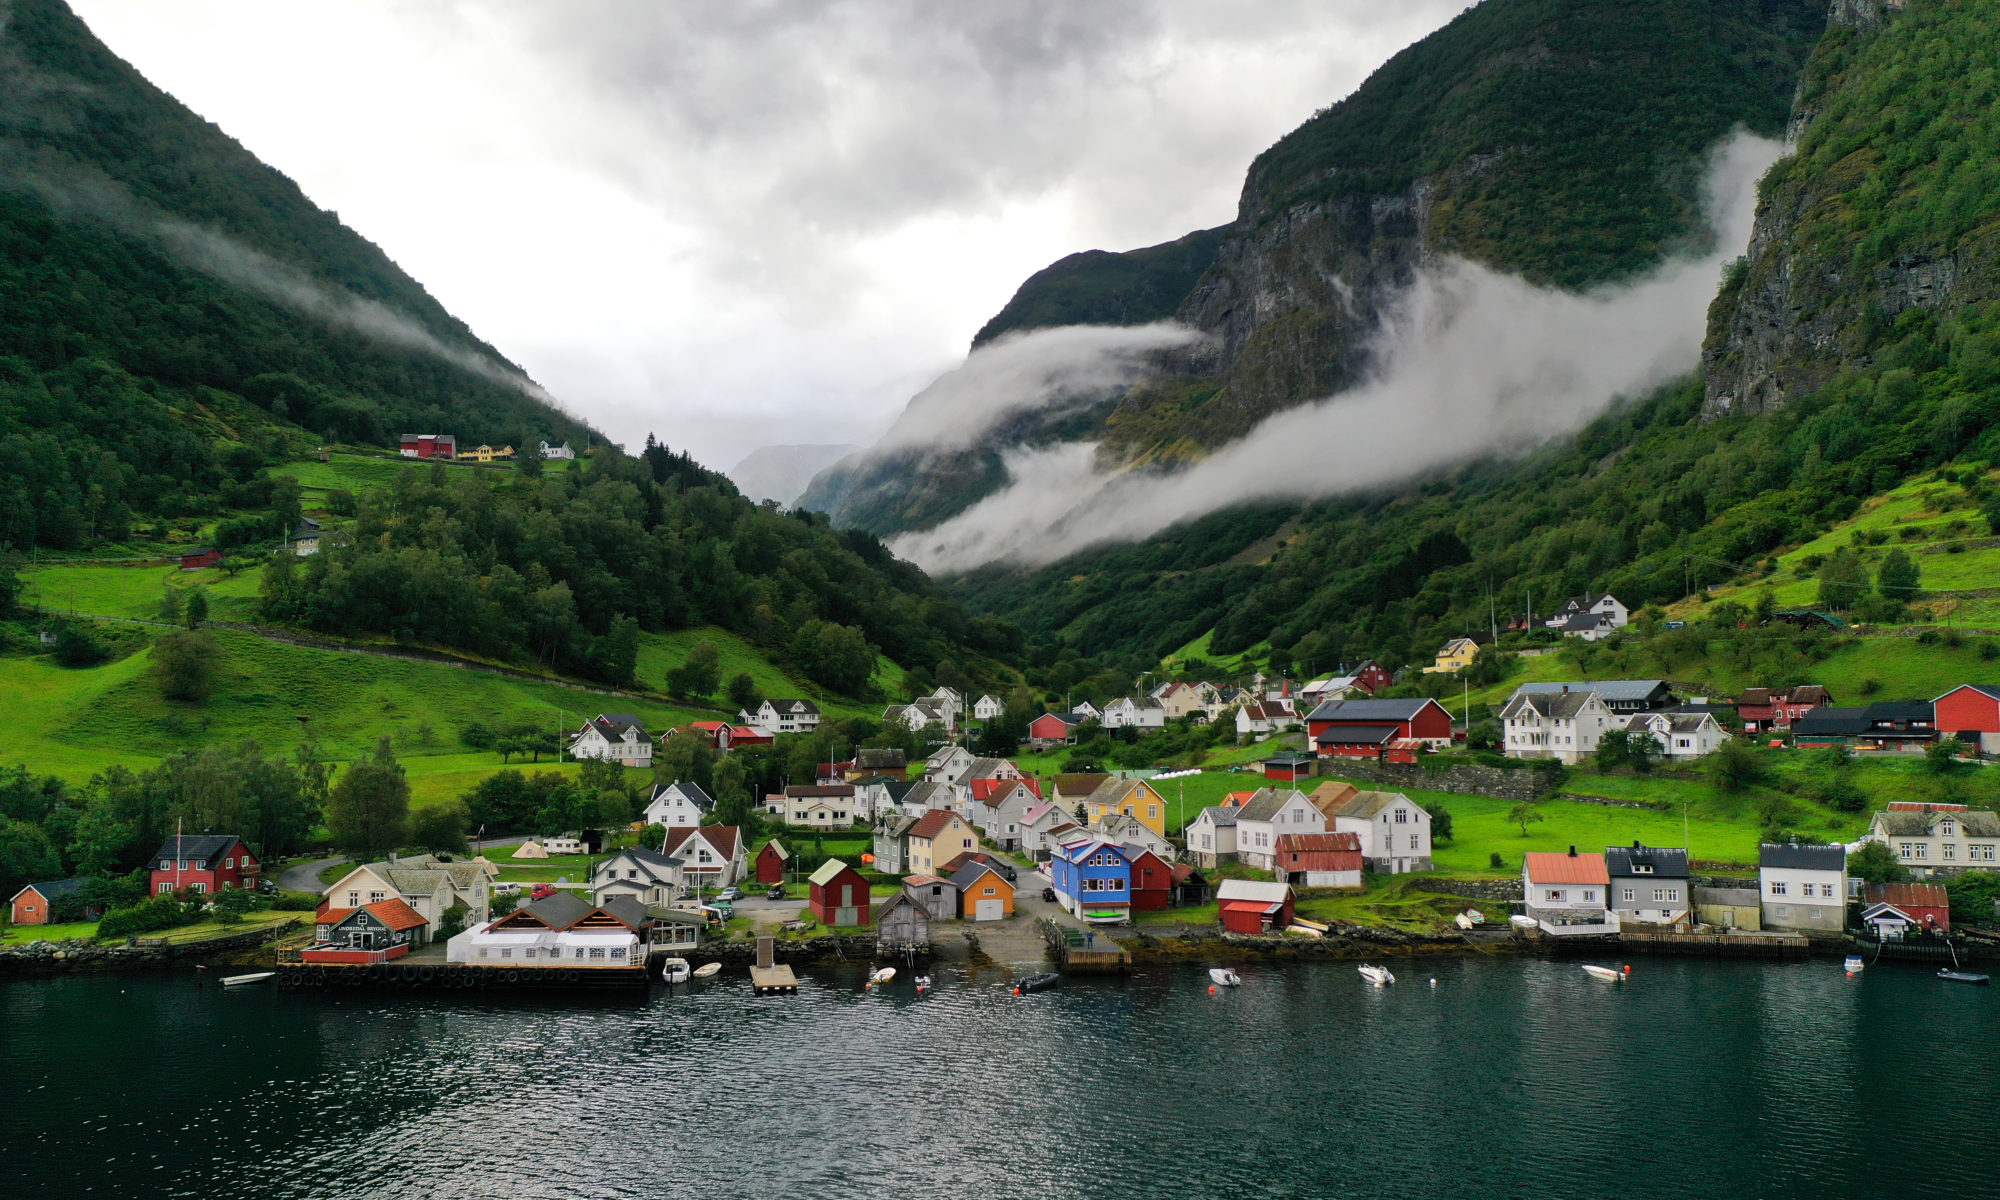 Undredal in Aurland, Norway